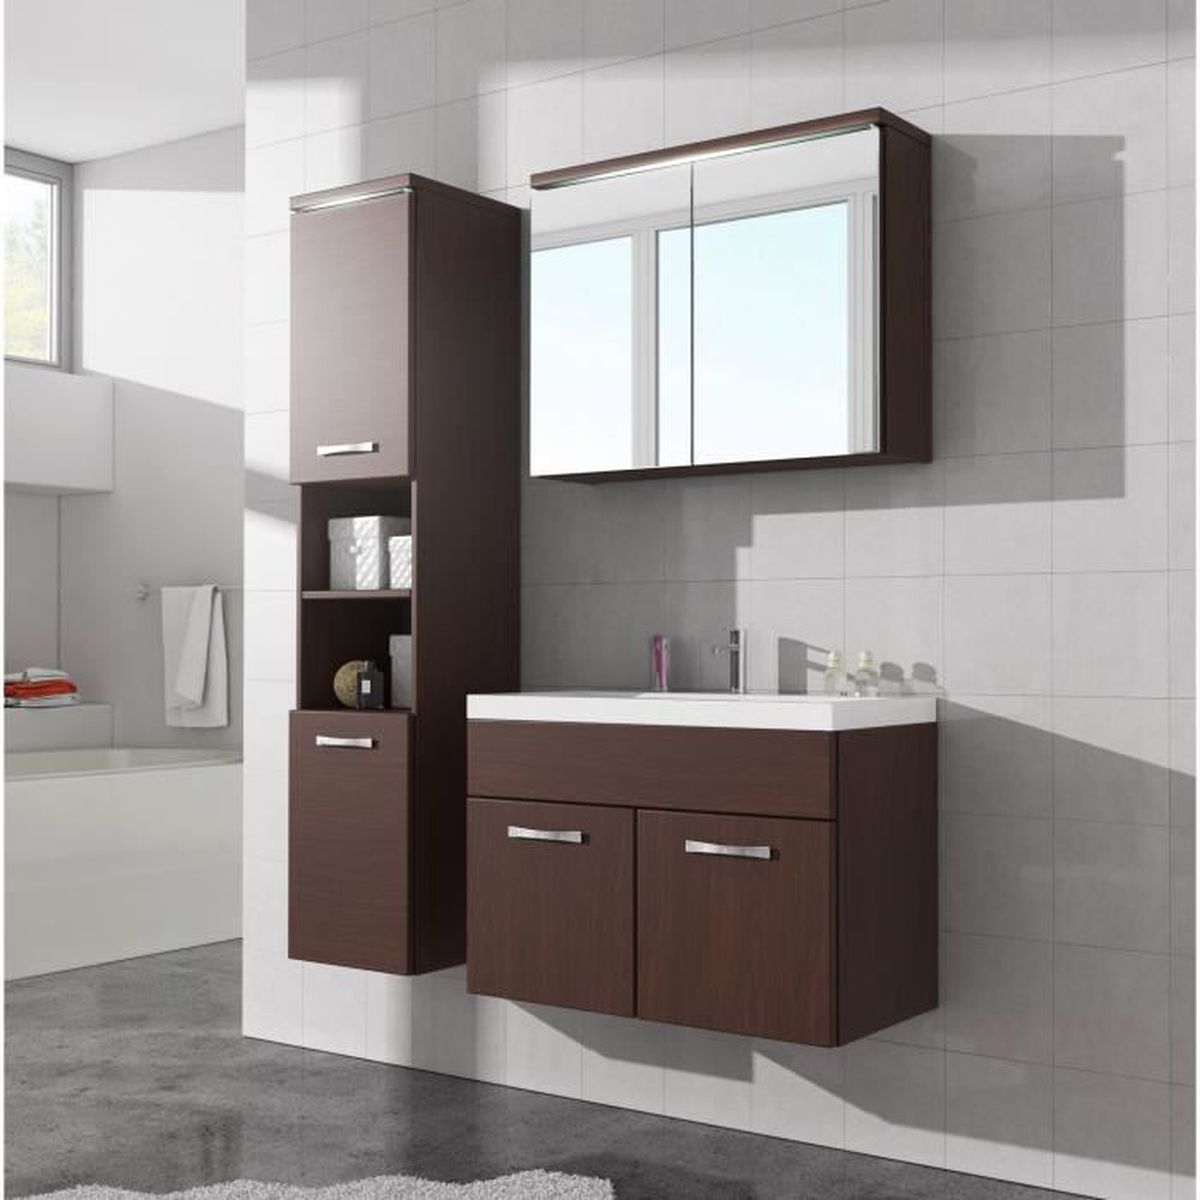 meuble de salle de bain paso armoire de rangement meuble lavabo vier meuble lavabo ch ne. Black Bedroom Furniture Sets. Home Design Ideas